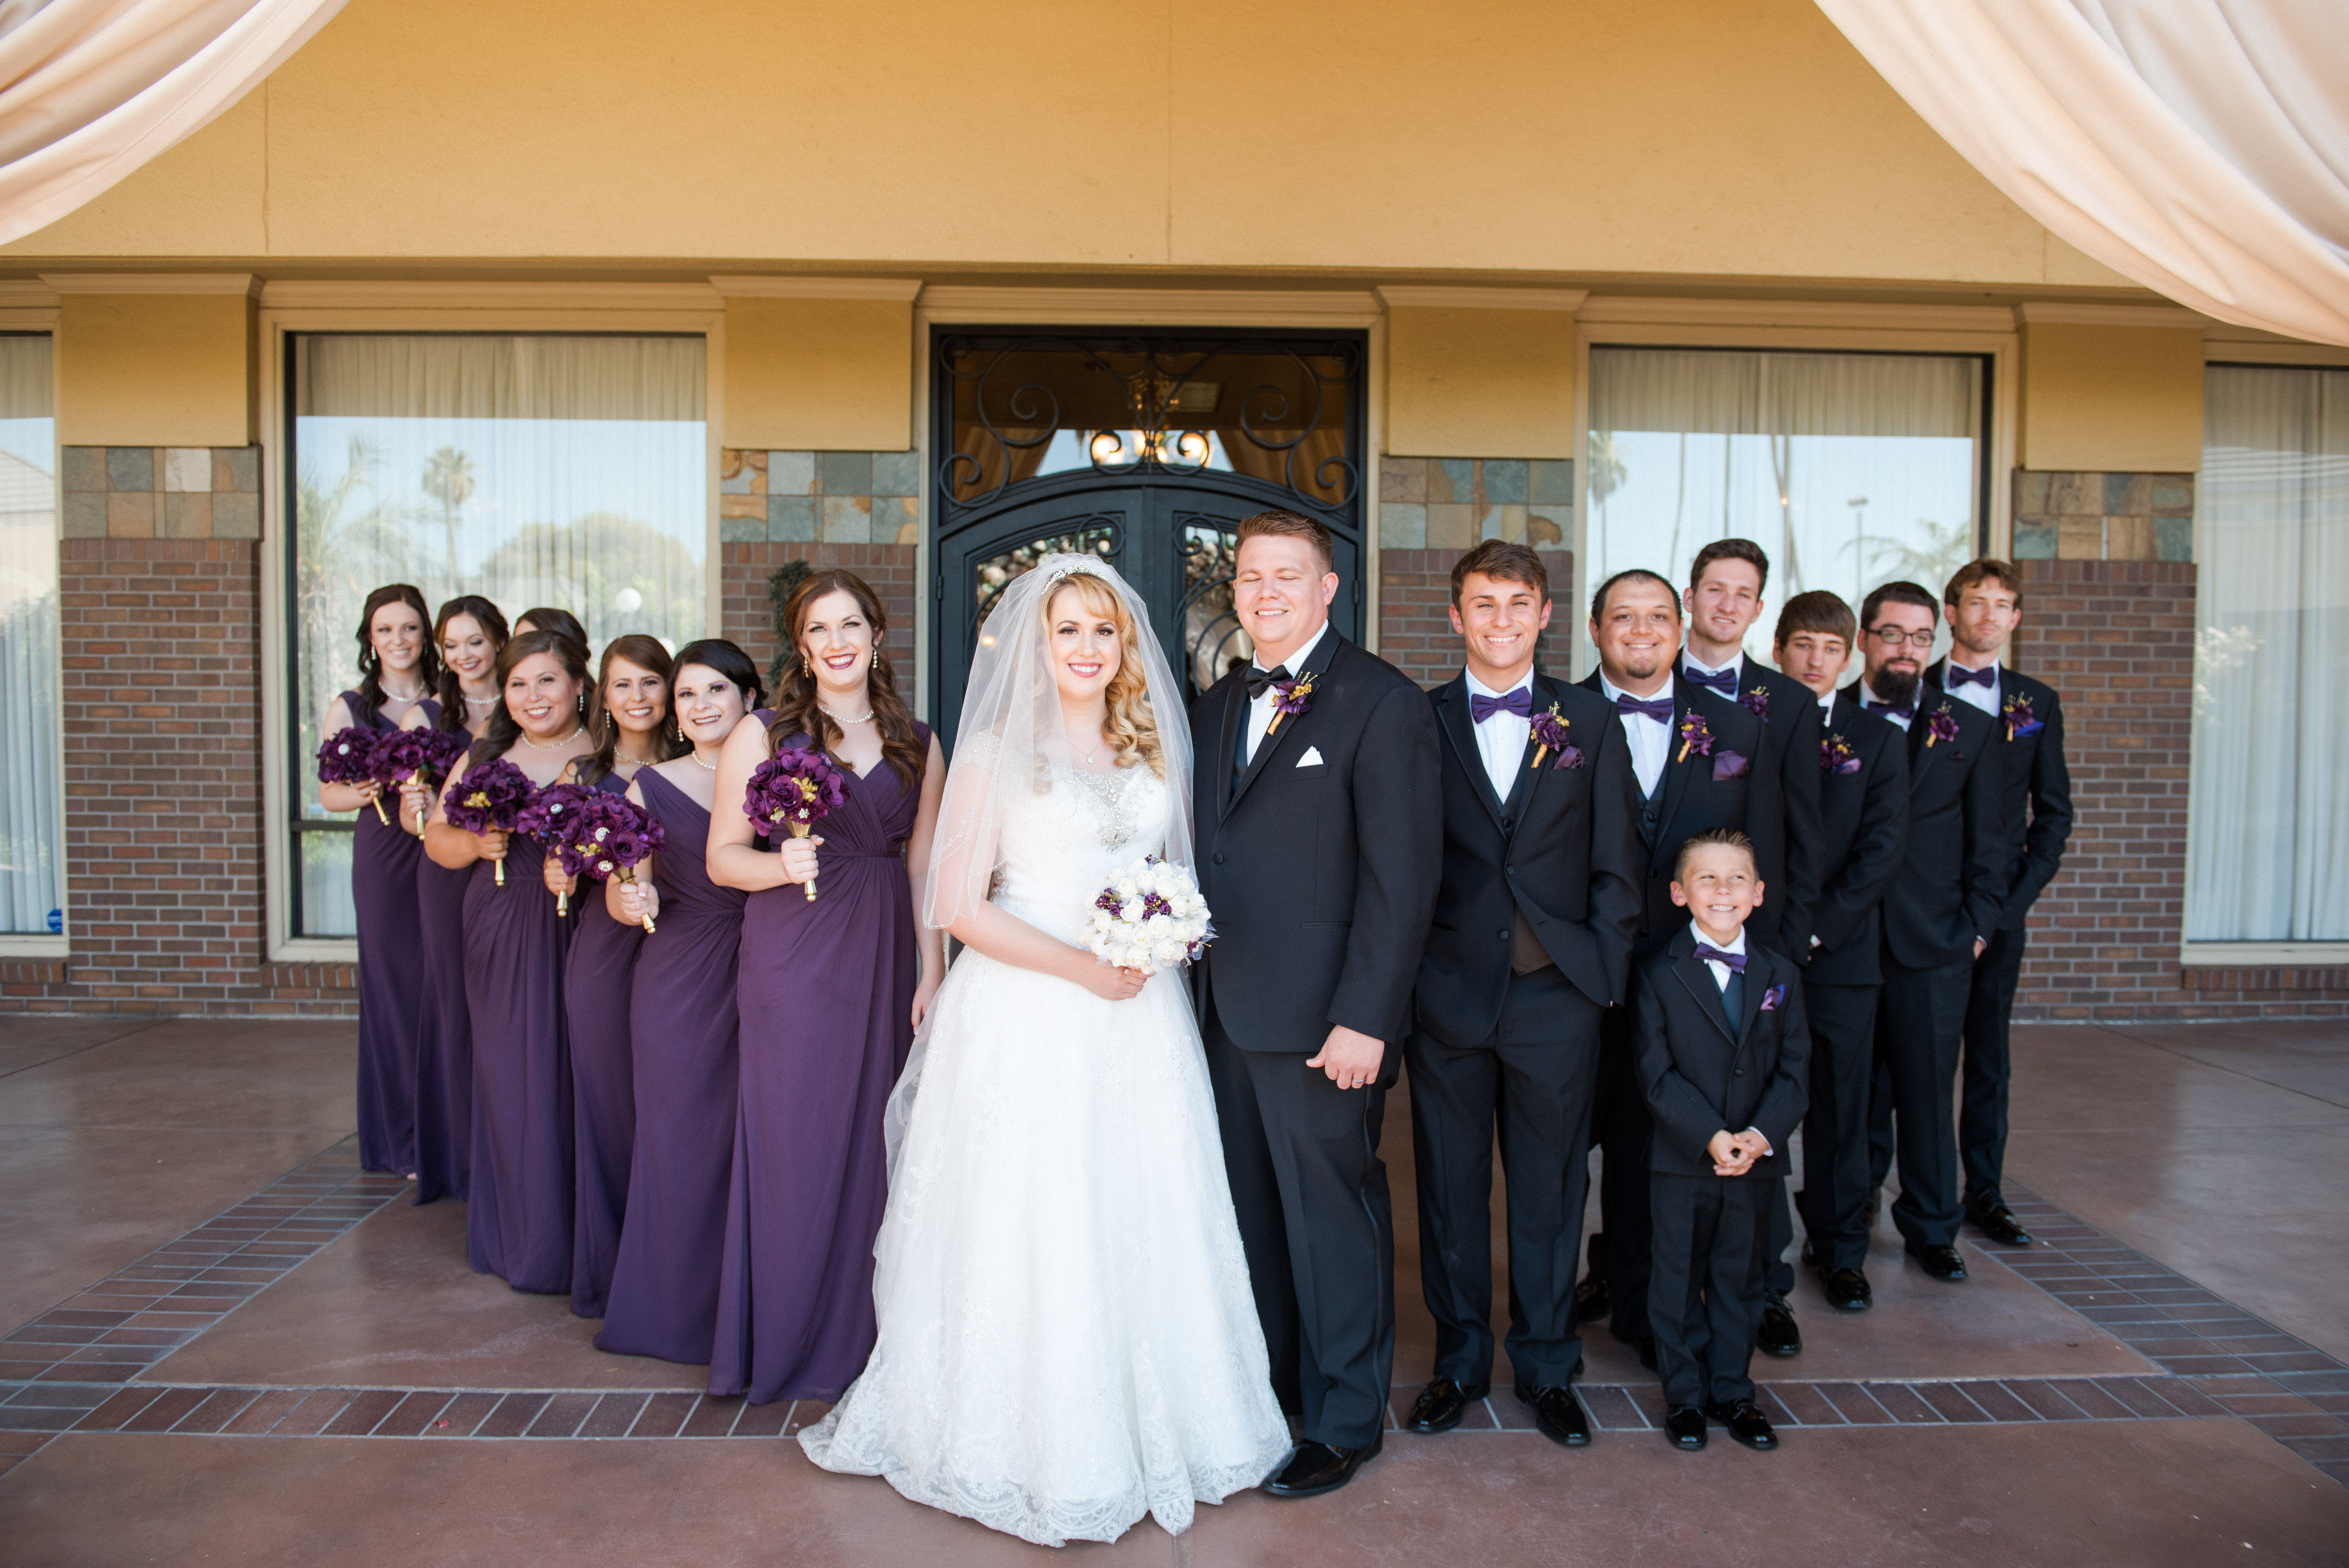 Bridal party dressed in plum and black |